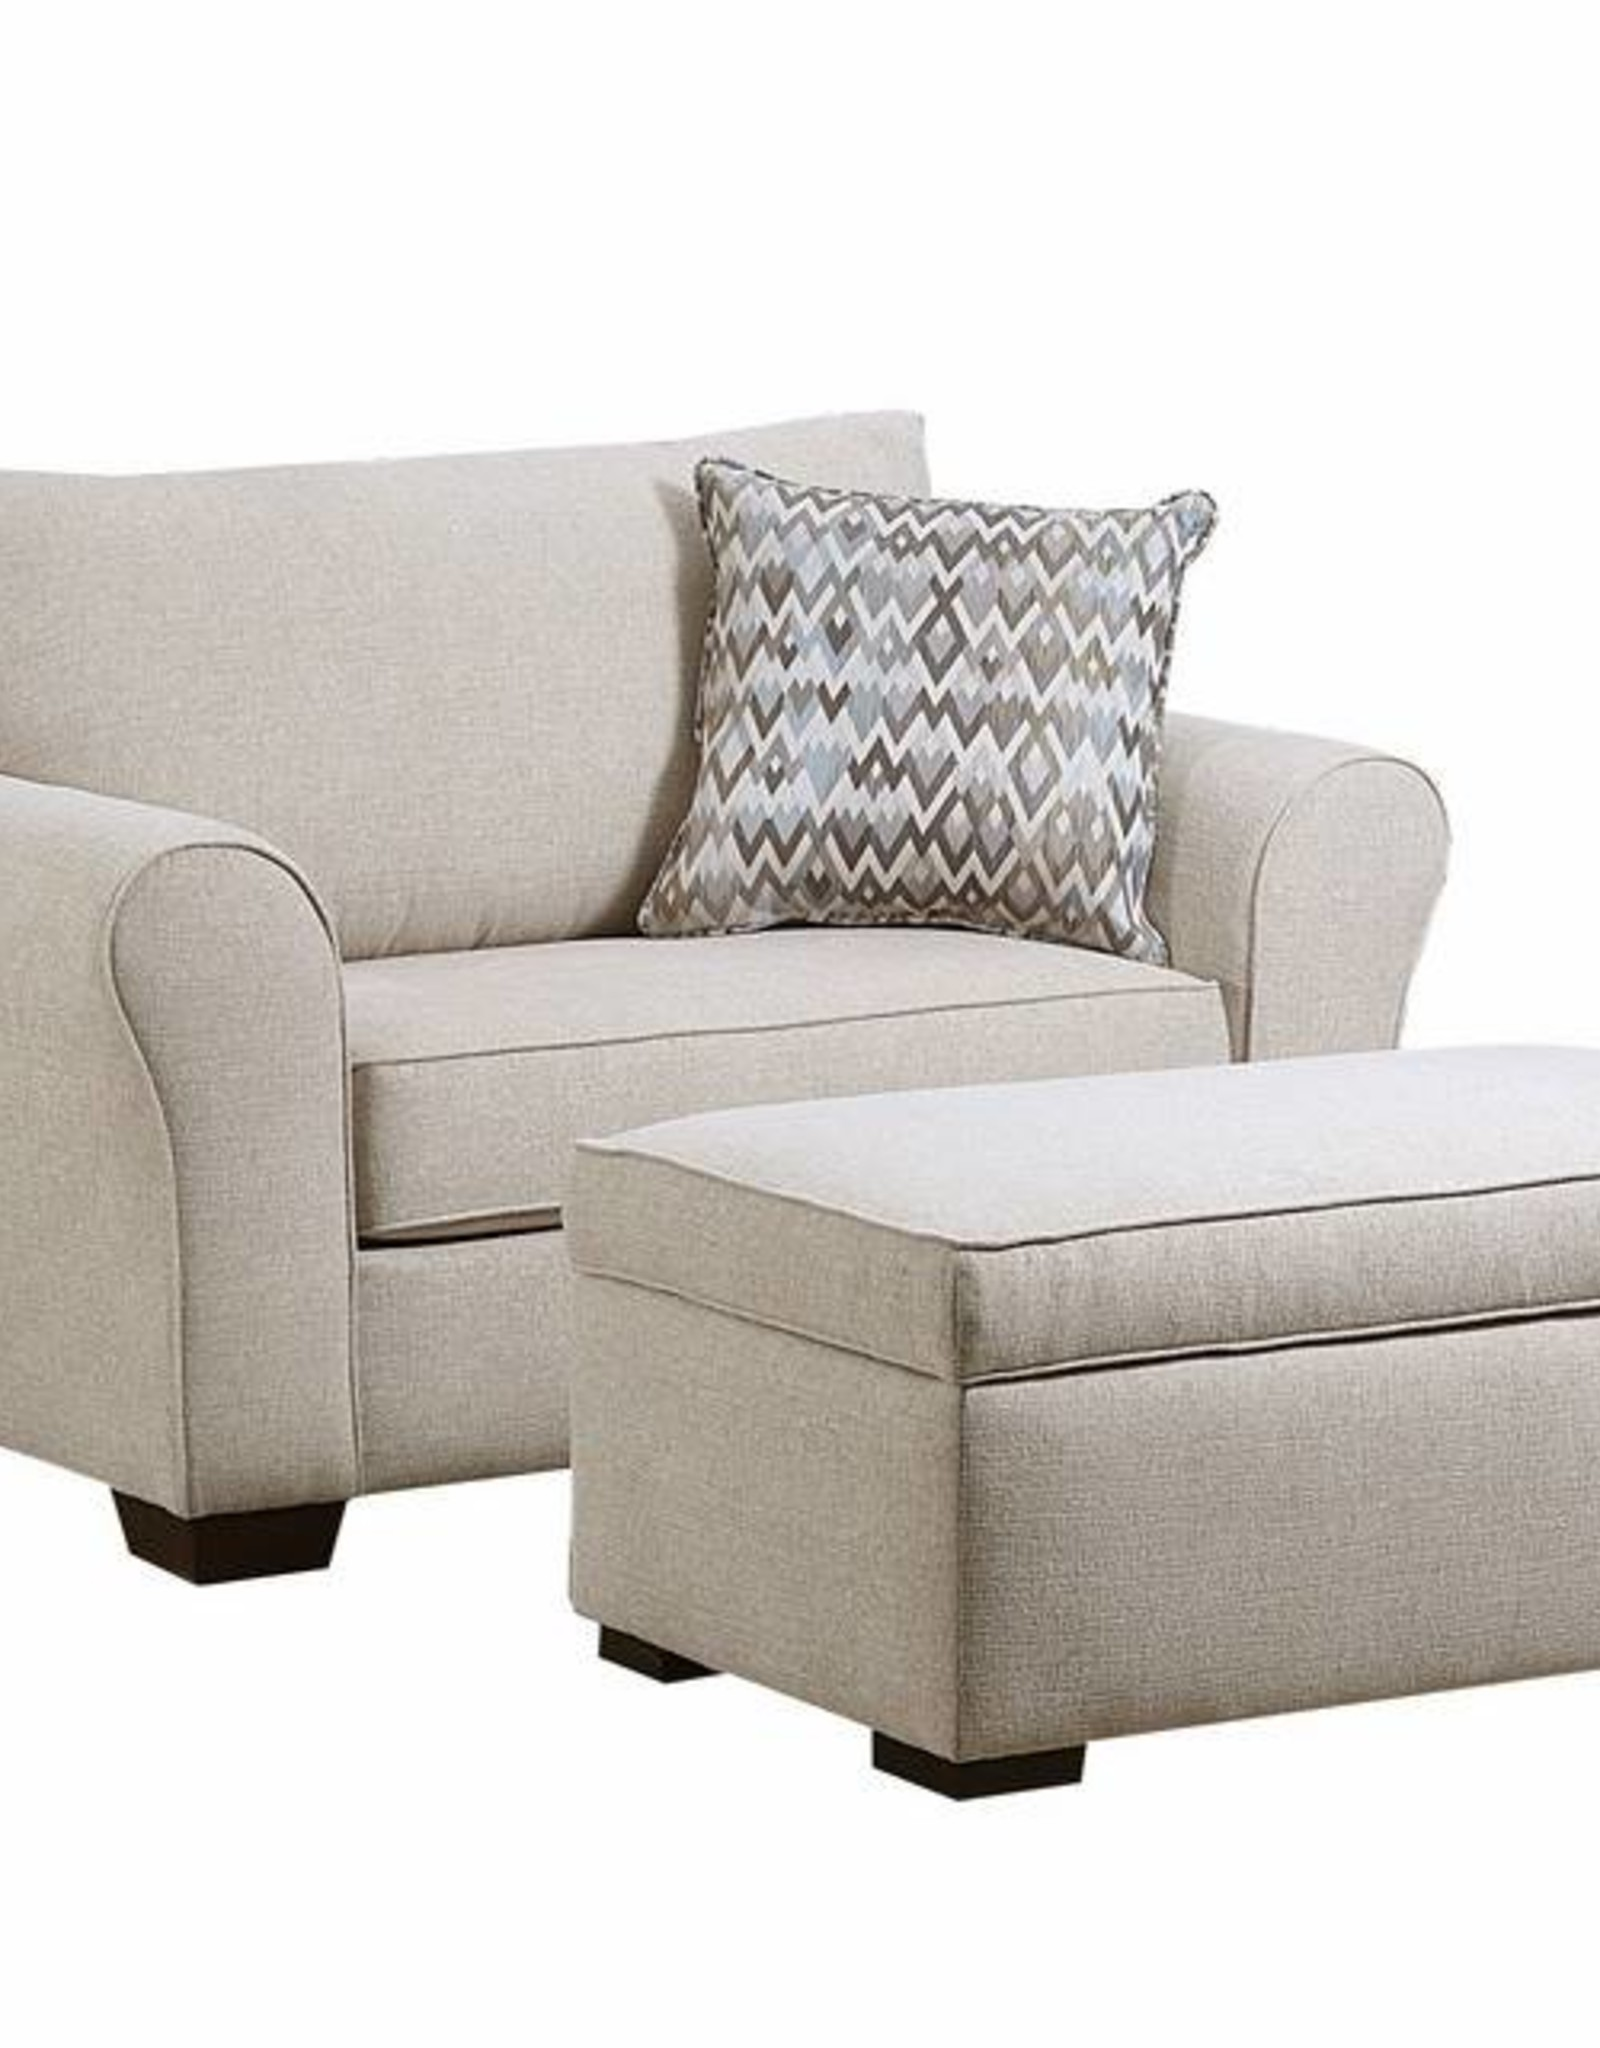 United Boston Linen Chair 1/2 and Ottoman